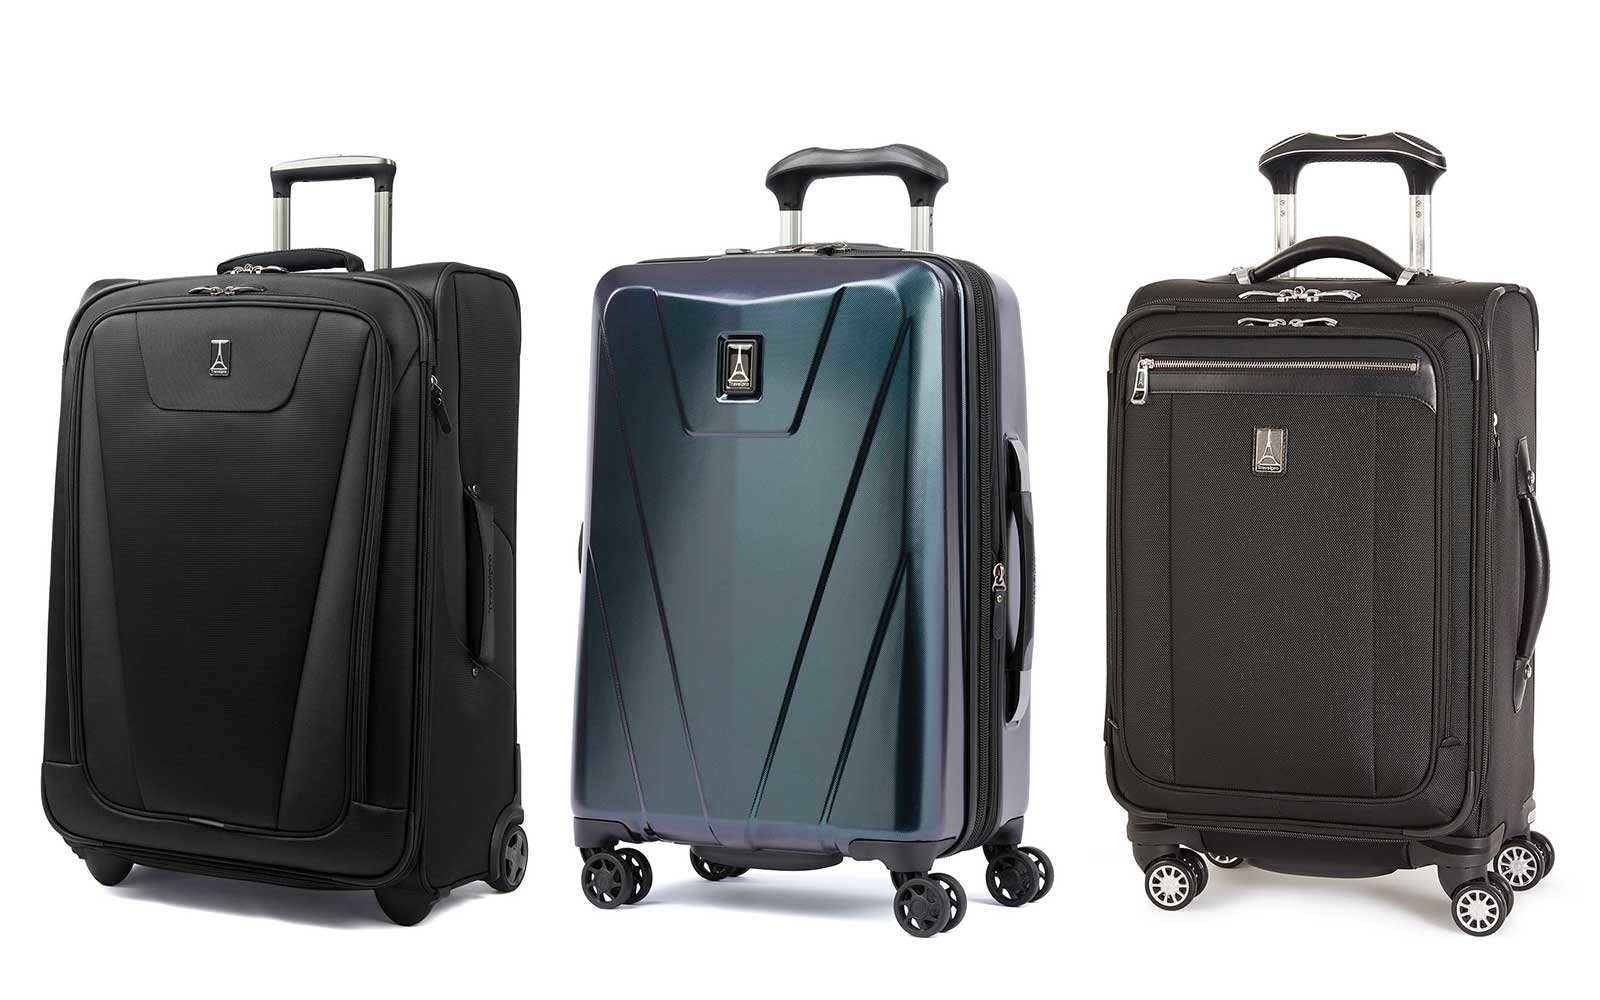 Travelpro Luggage and Suitcases